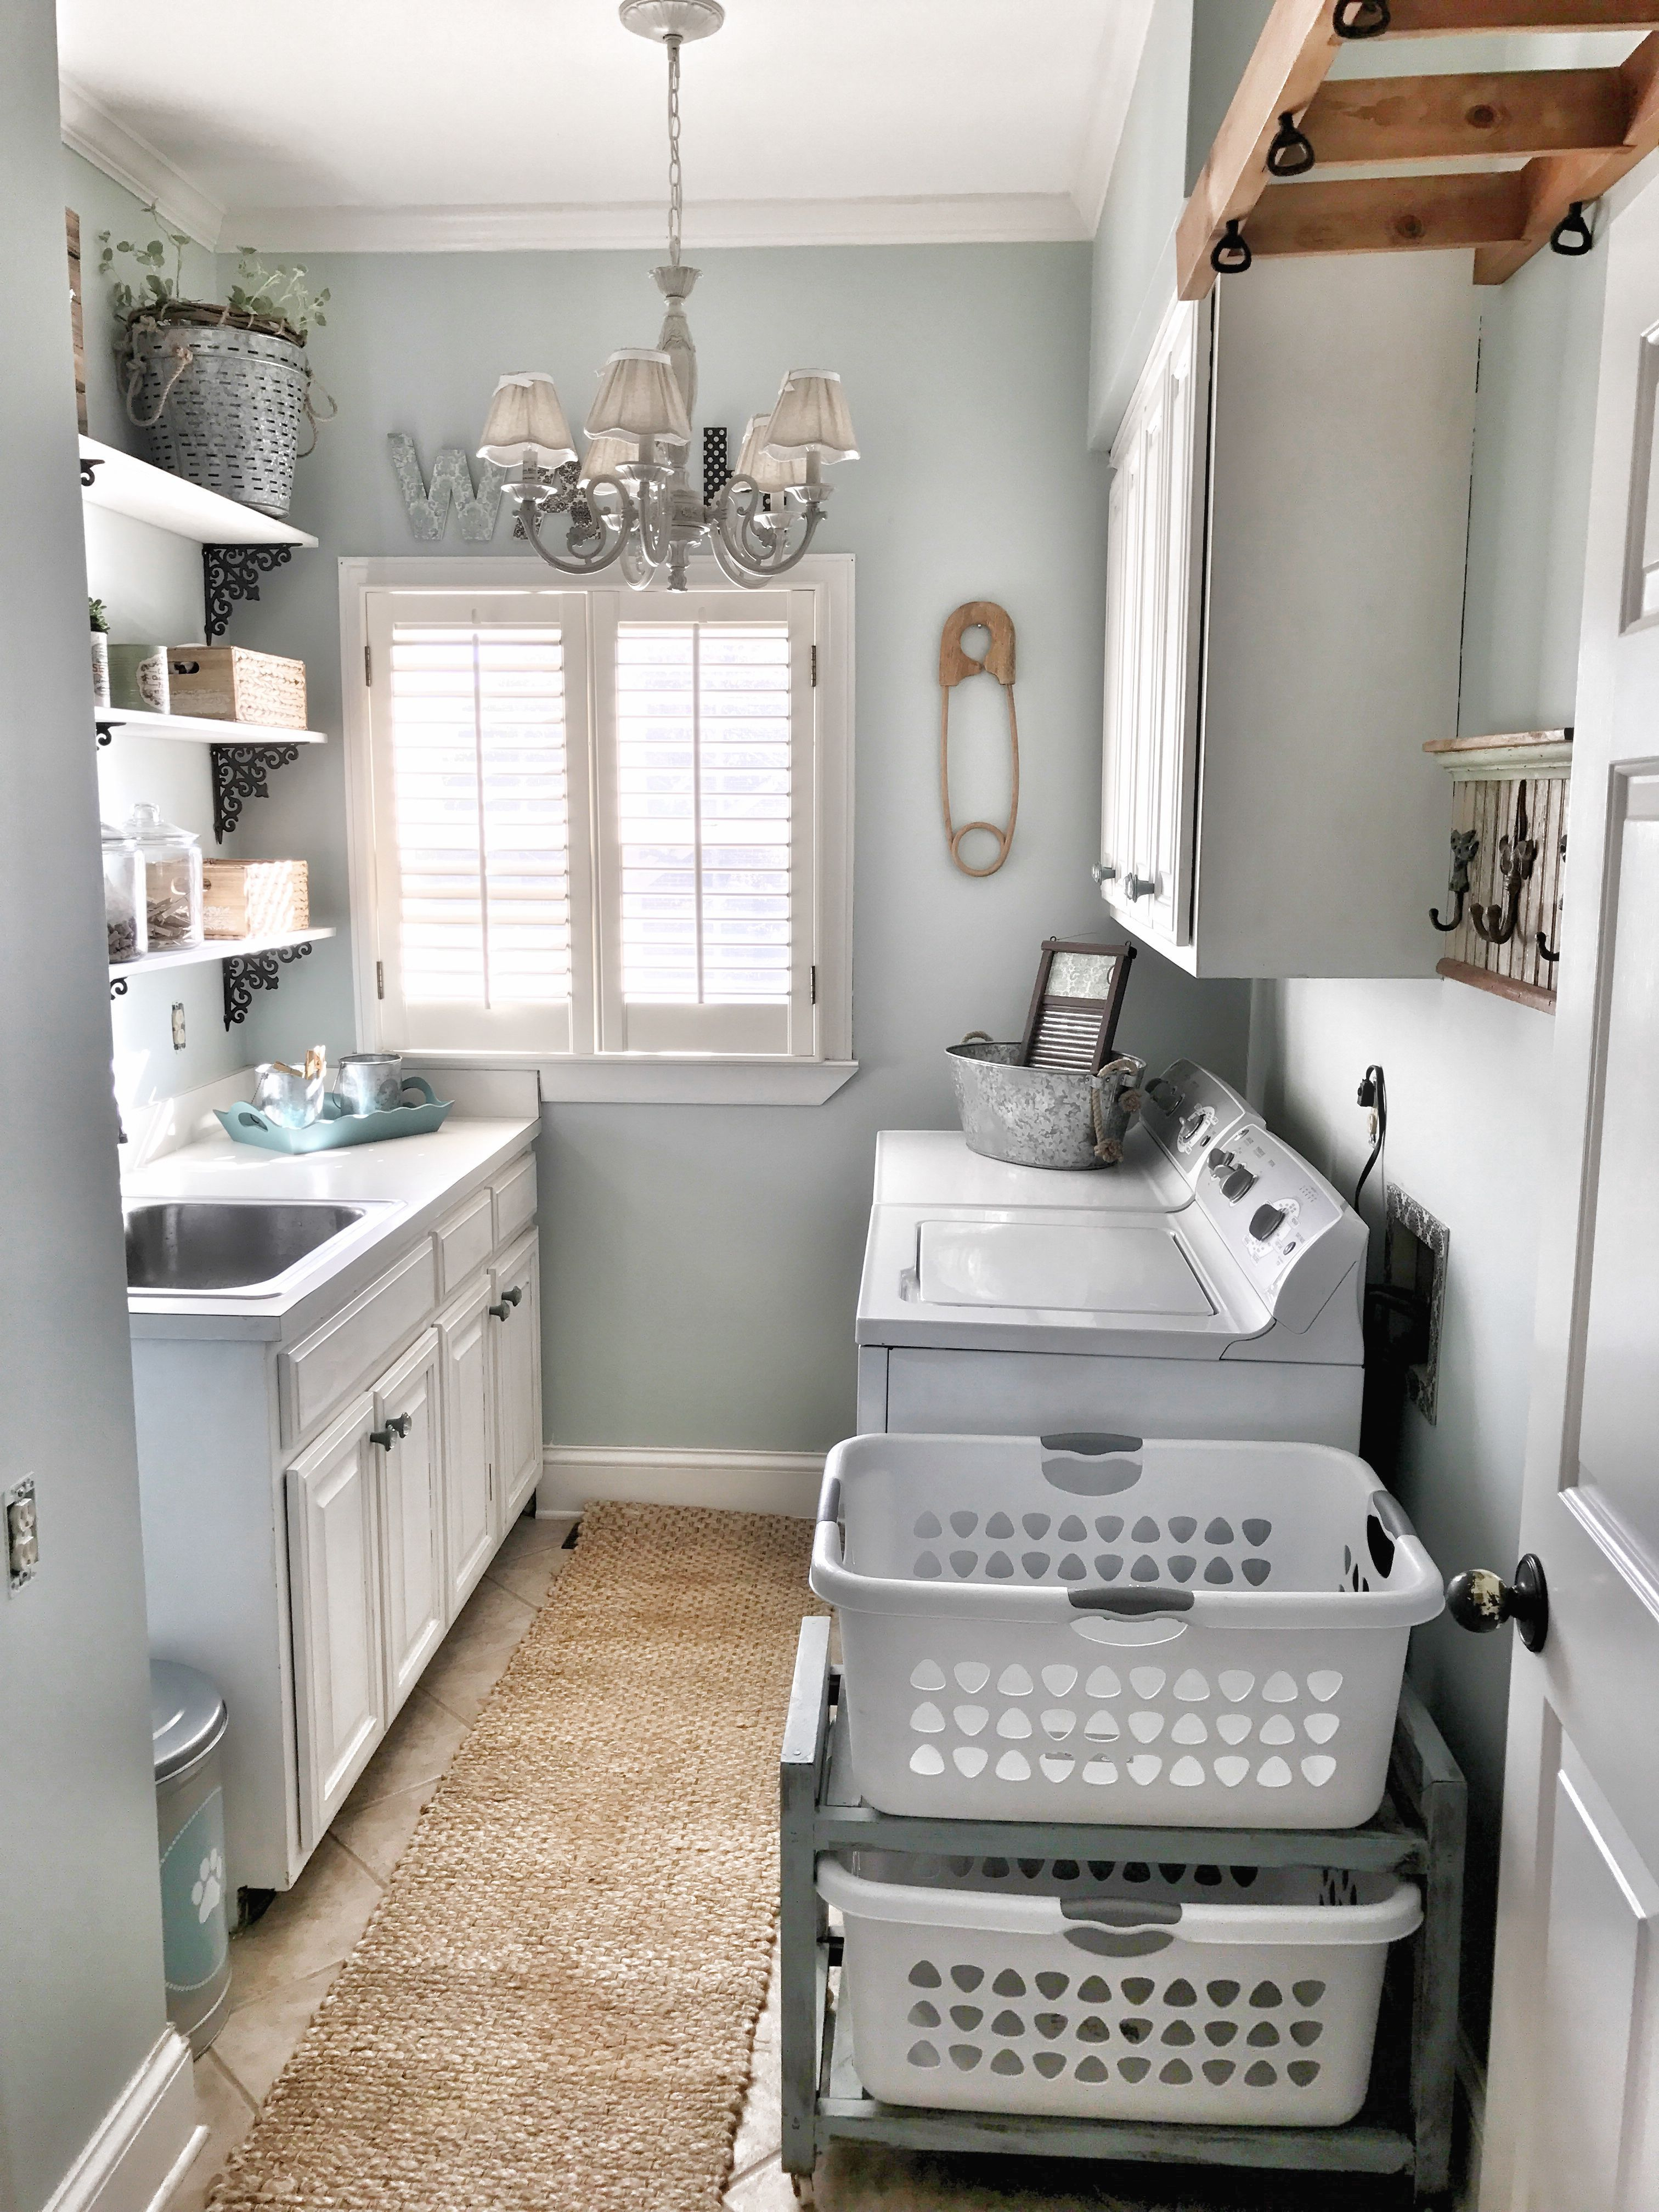 I love every detail of this space the runner hooks on the wall beautiful light fixture white cabinets blue walls all of it